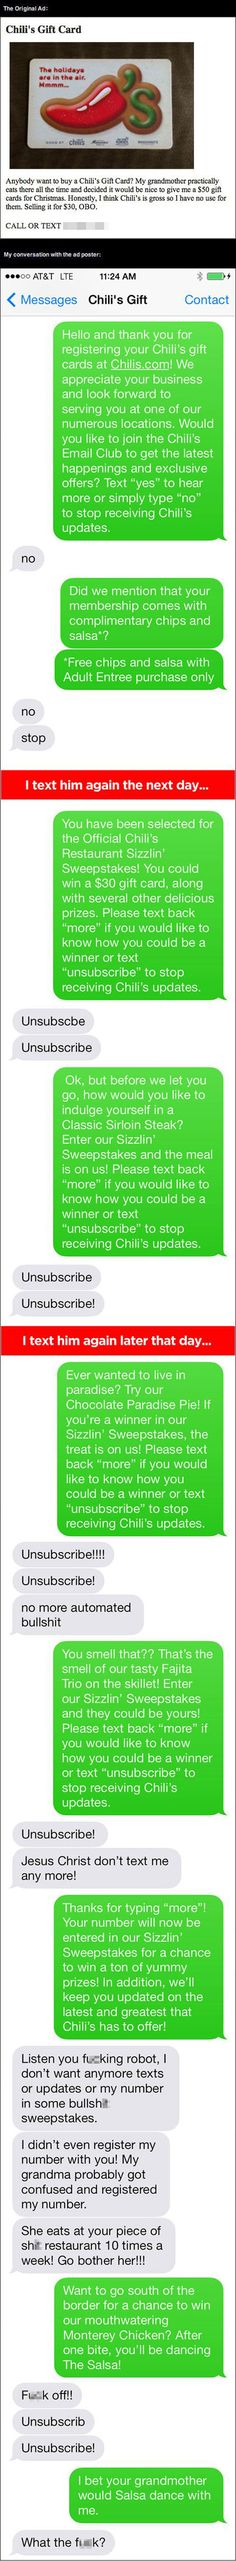 This is why you should never post your phone number online, ever.